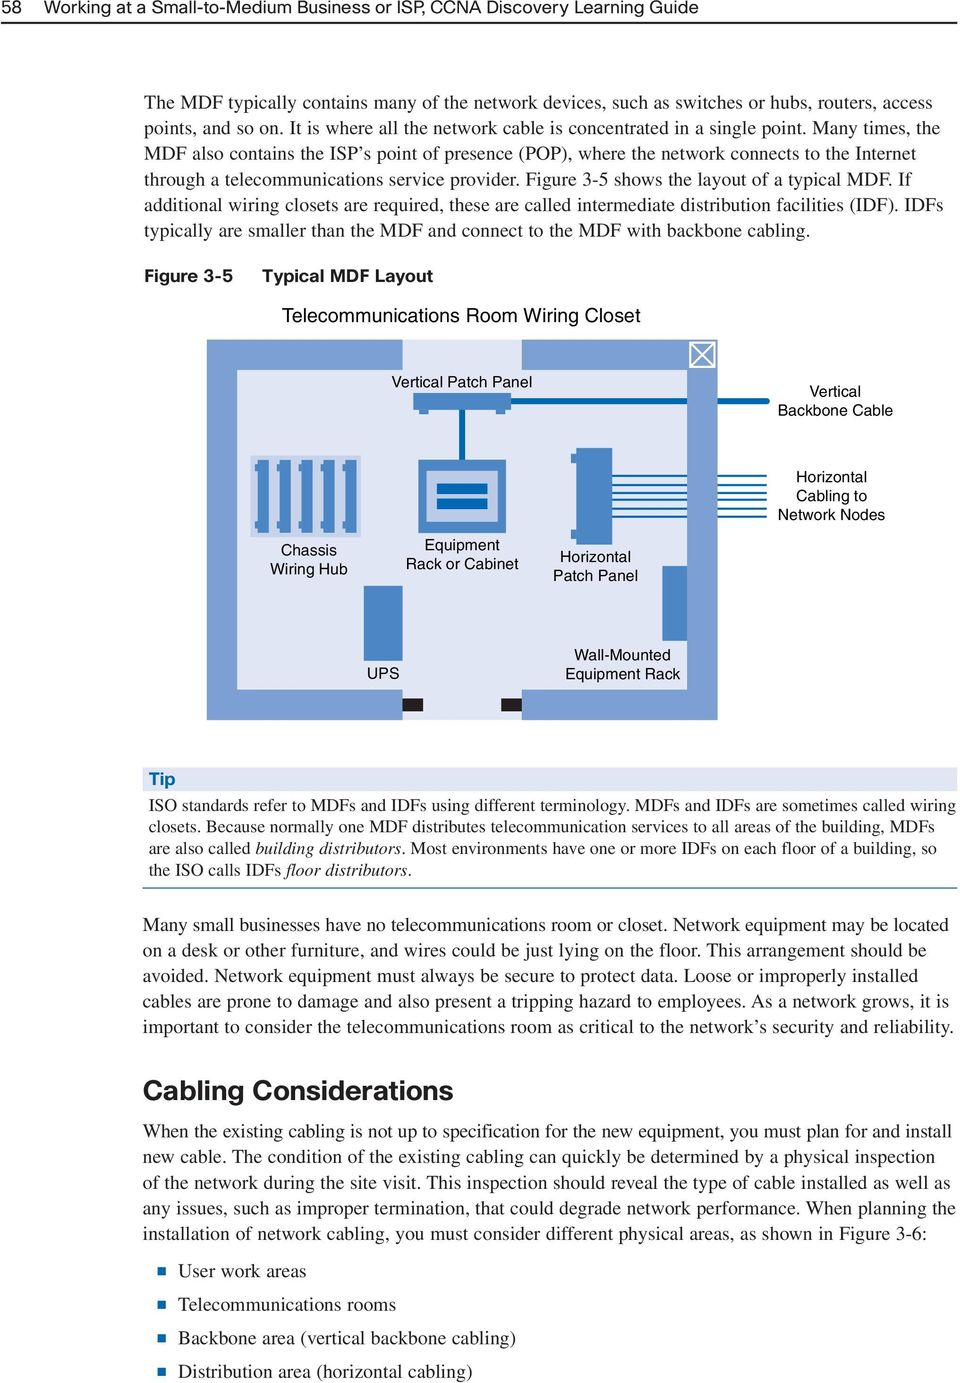 Planning A Network Upgrade Pdf Internet Wiring Closet Many Times The Mdf Also Contains Isp S Point Of Presence Pop